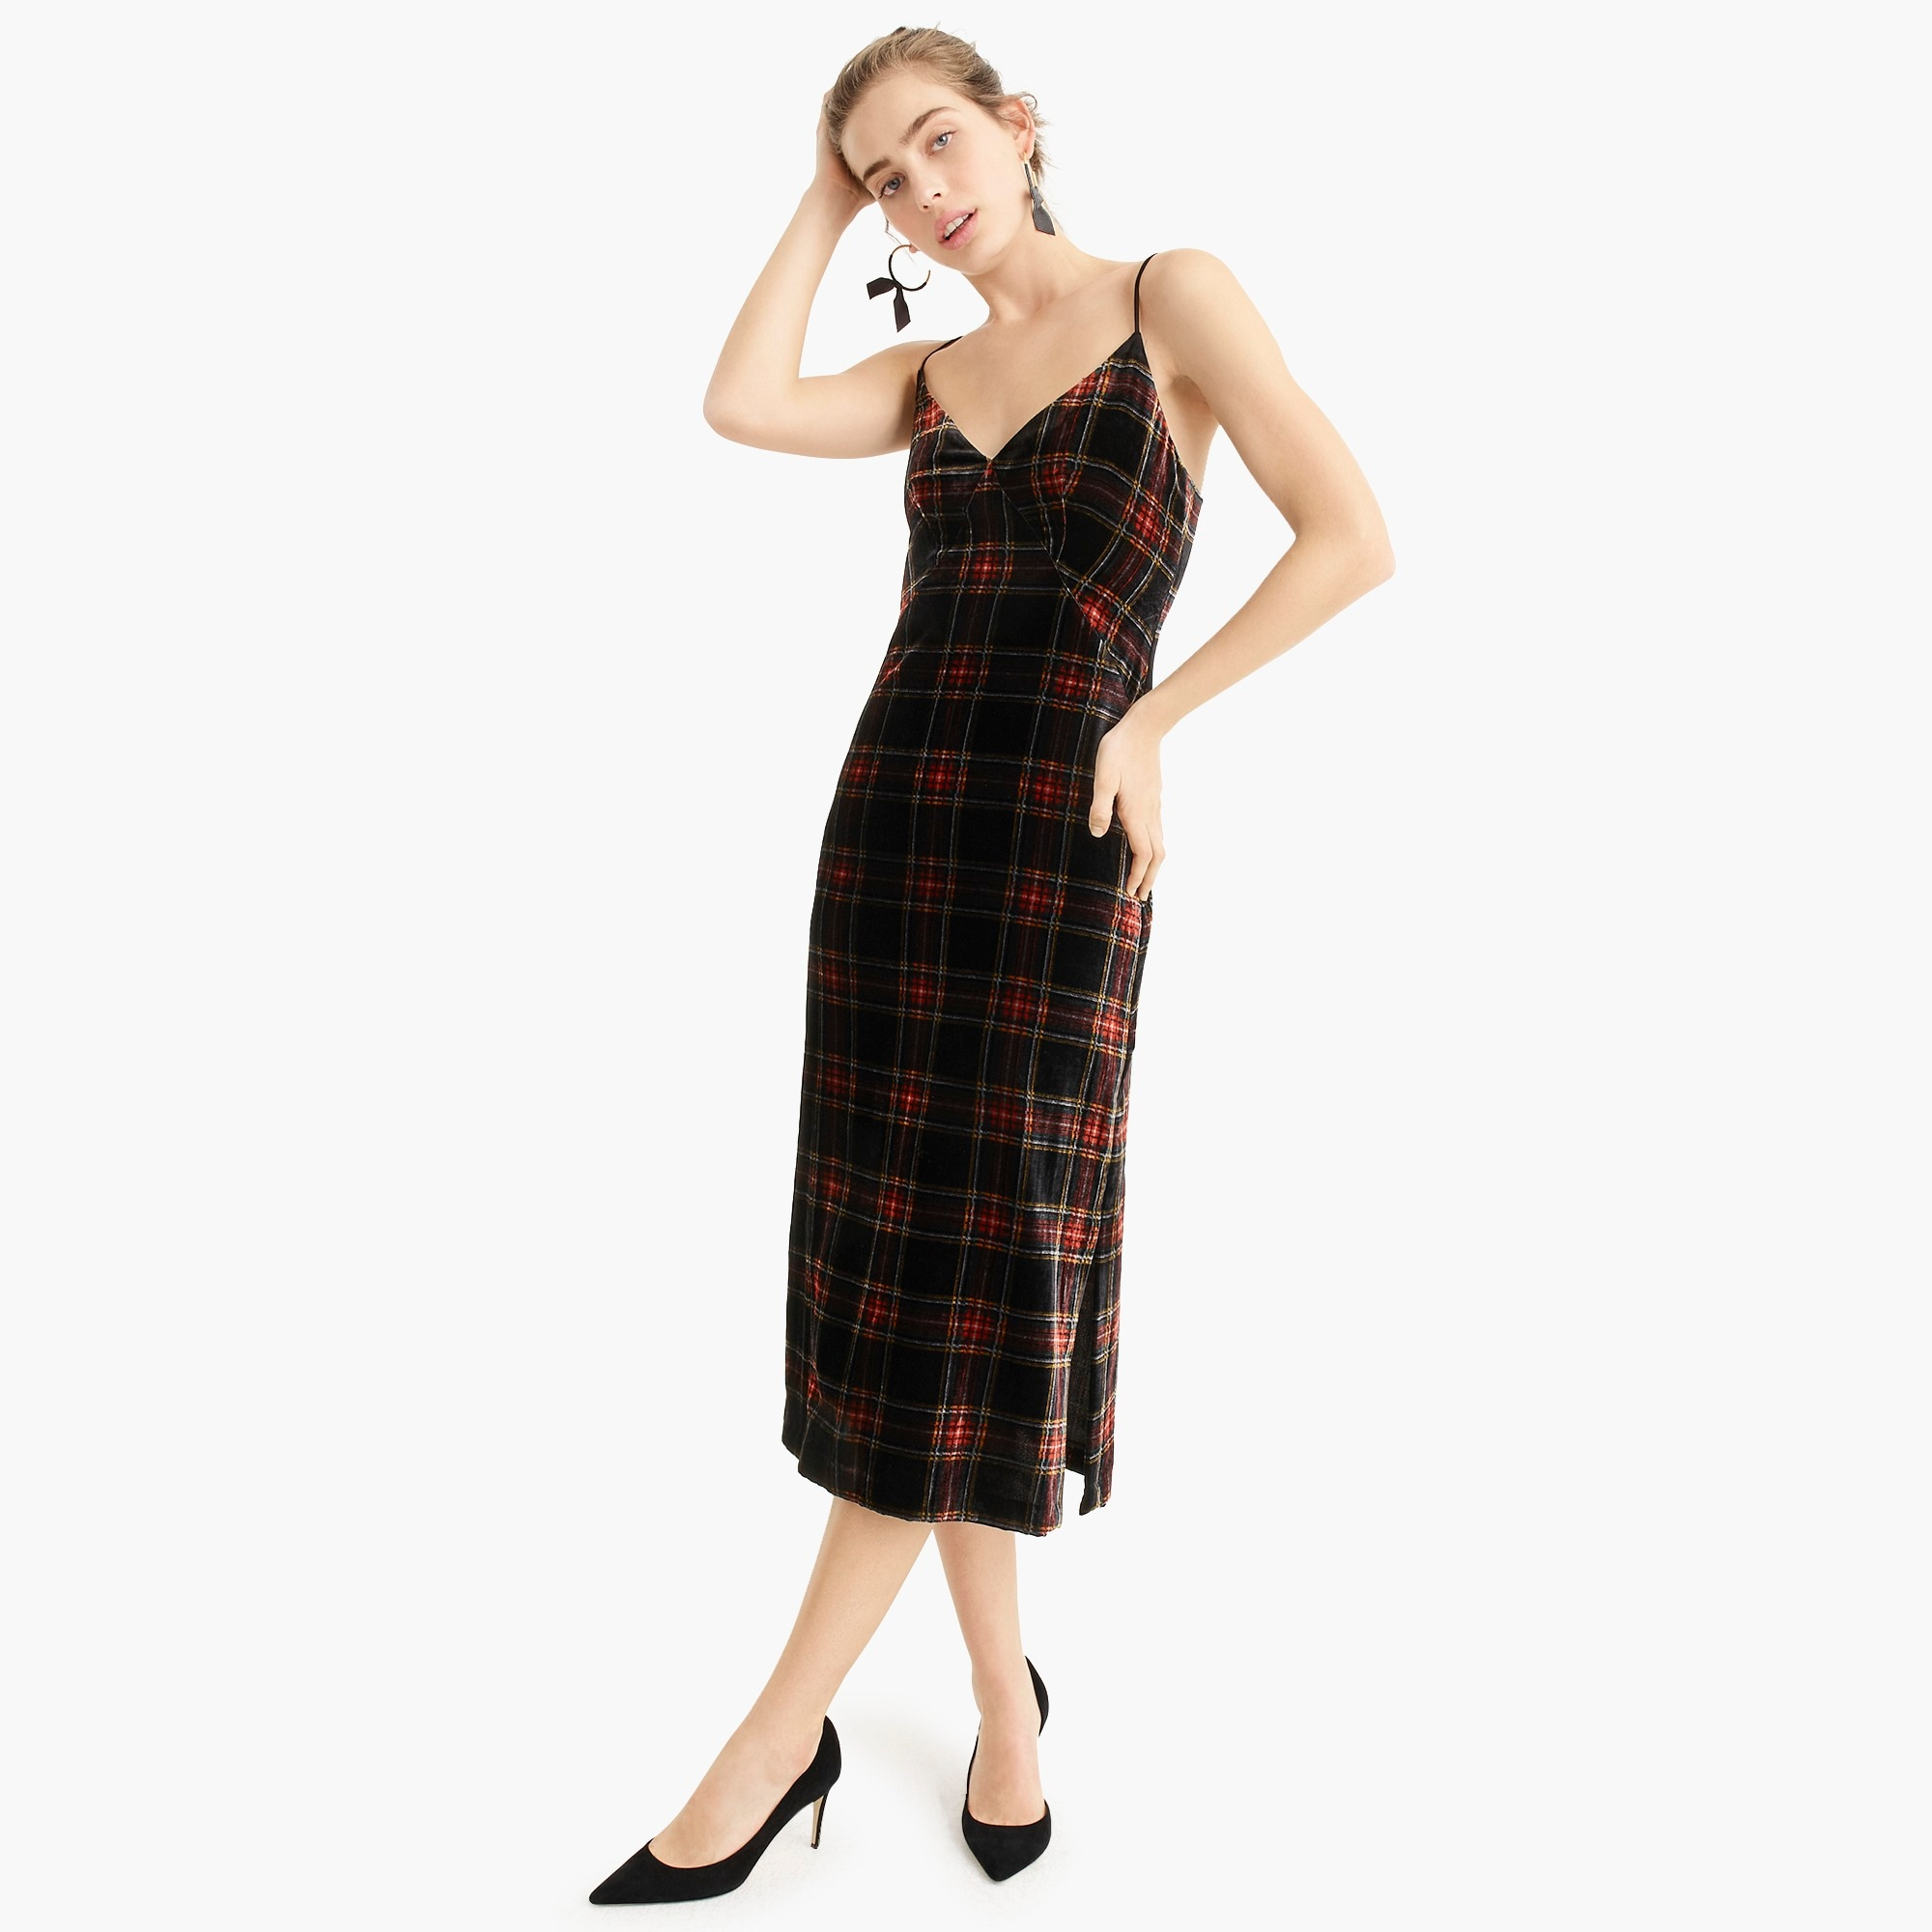 womens Spaghetti-strap midi dress in velvet Stewart tartan